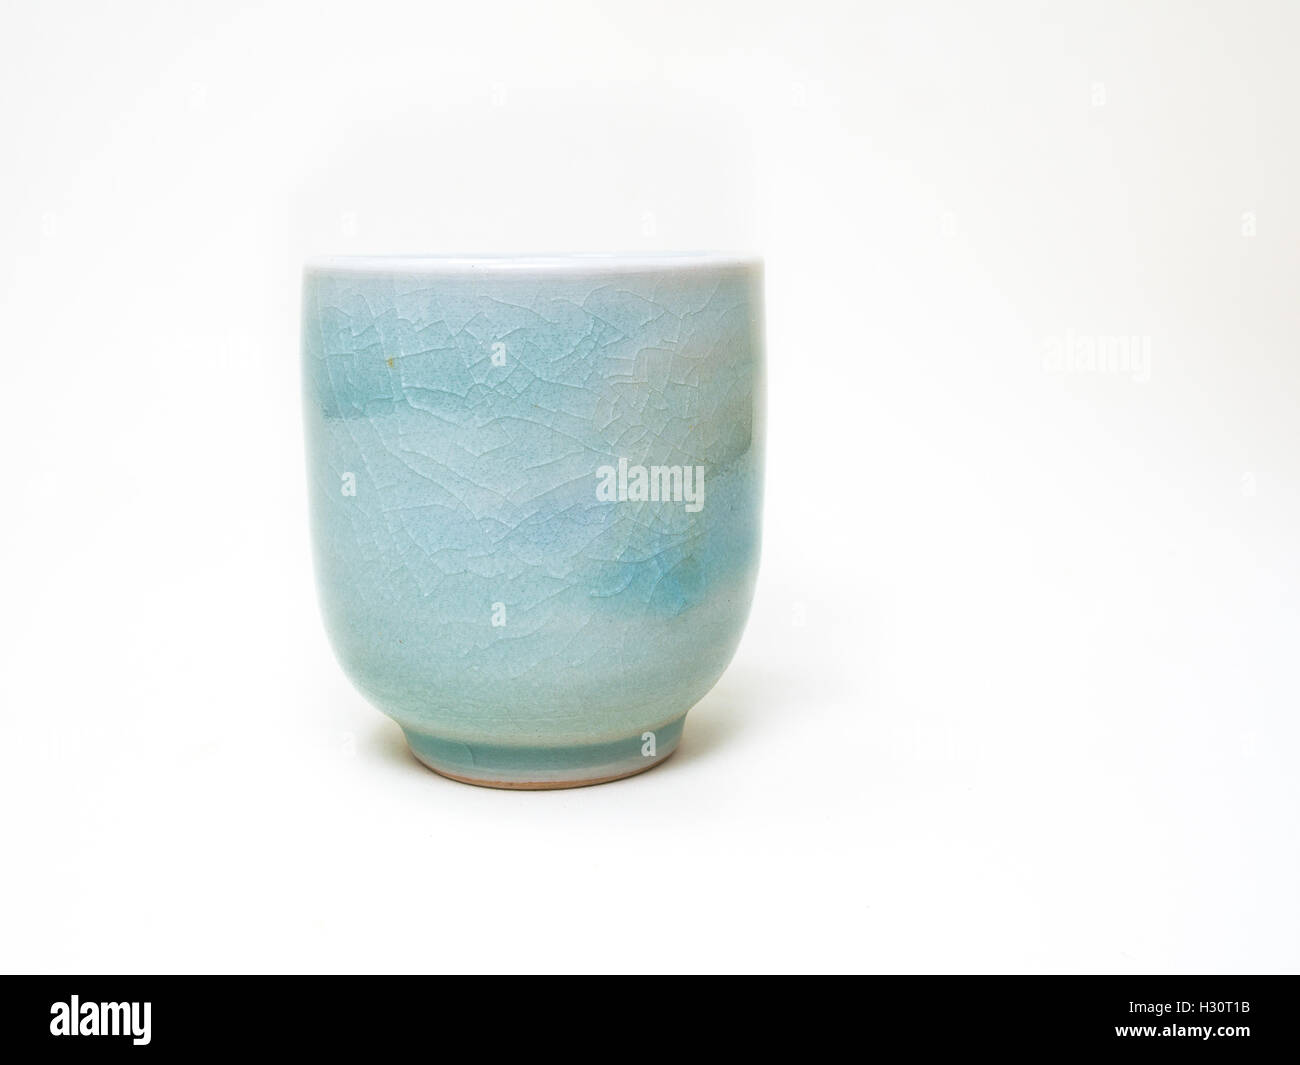 Japanes Tea Cup on white background - Stock Image